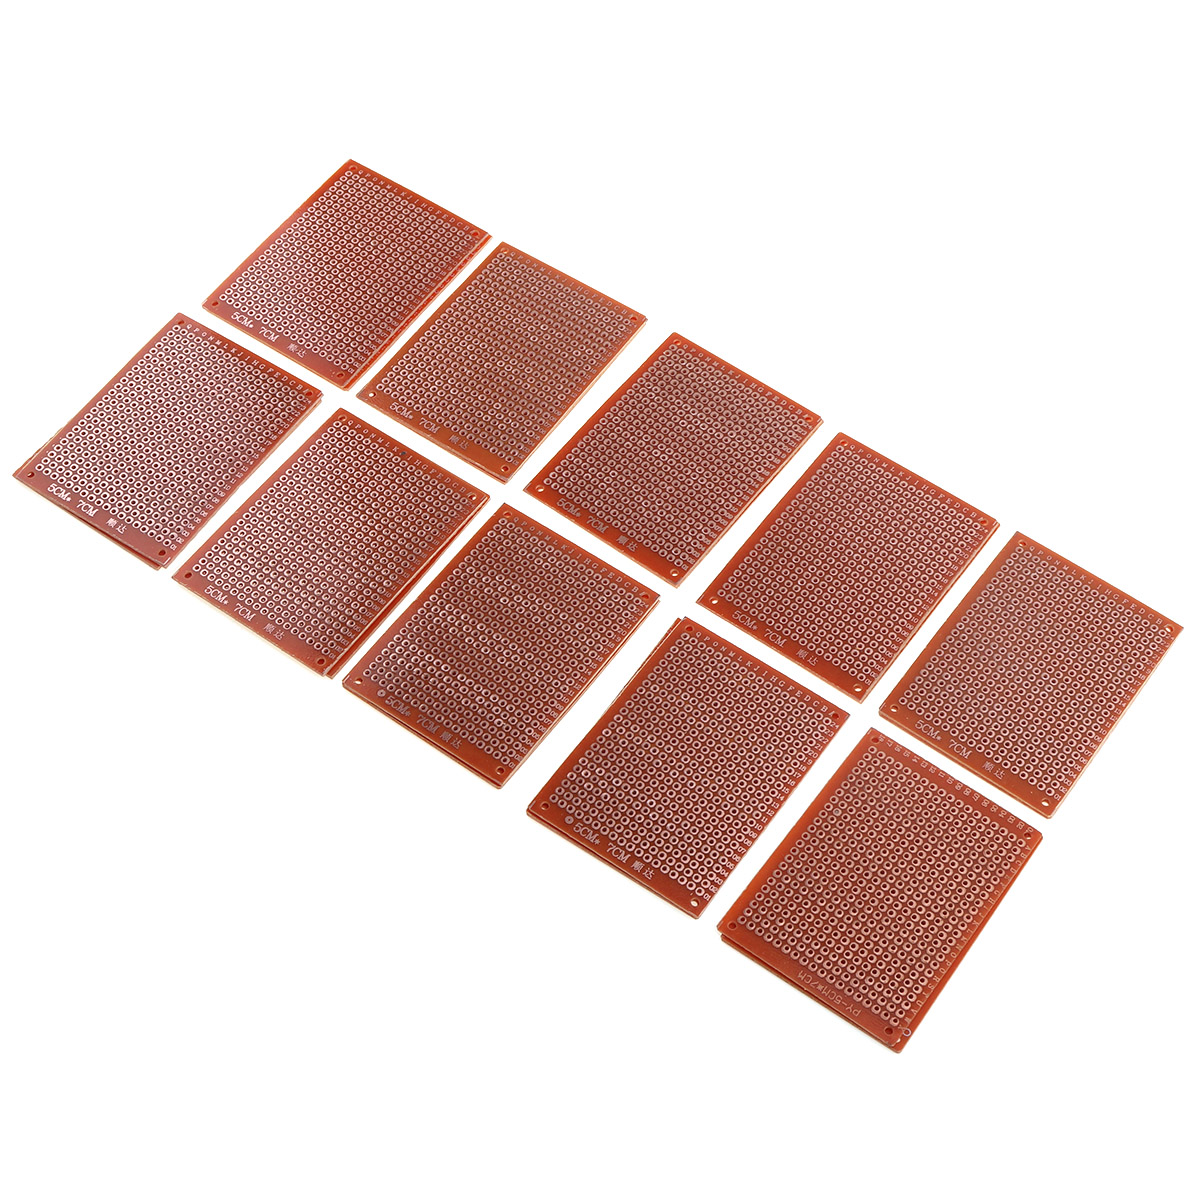 New 10pcs/set 5 X 7cm Universal Board Experimental Plate With Hole Board And Circuit PCB For DIY Laser Engraving Machine Use